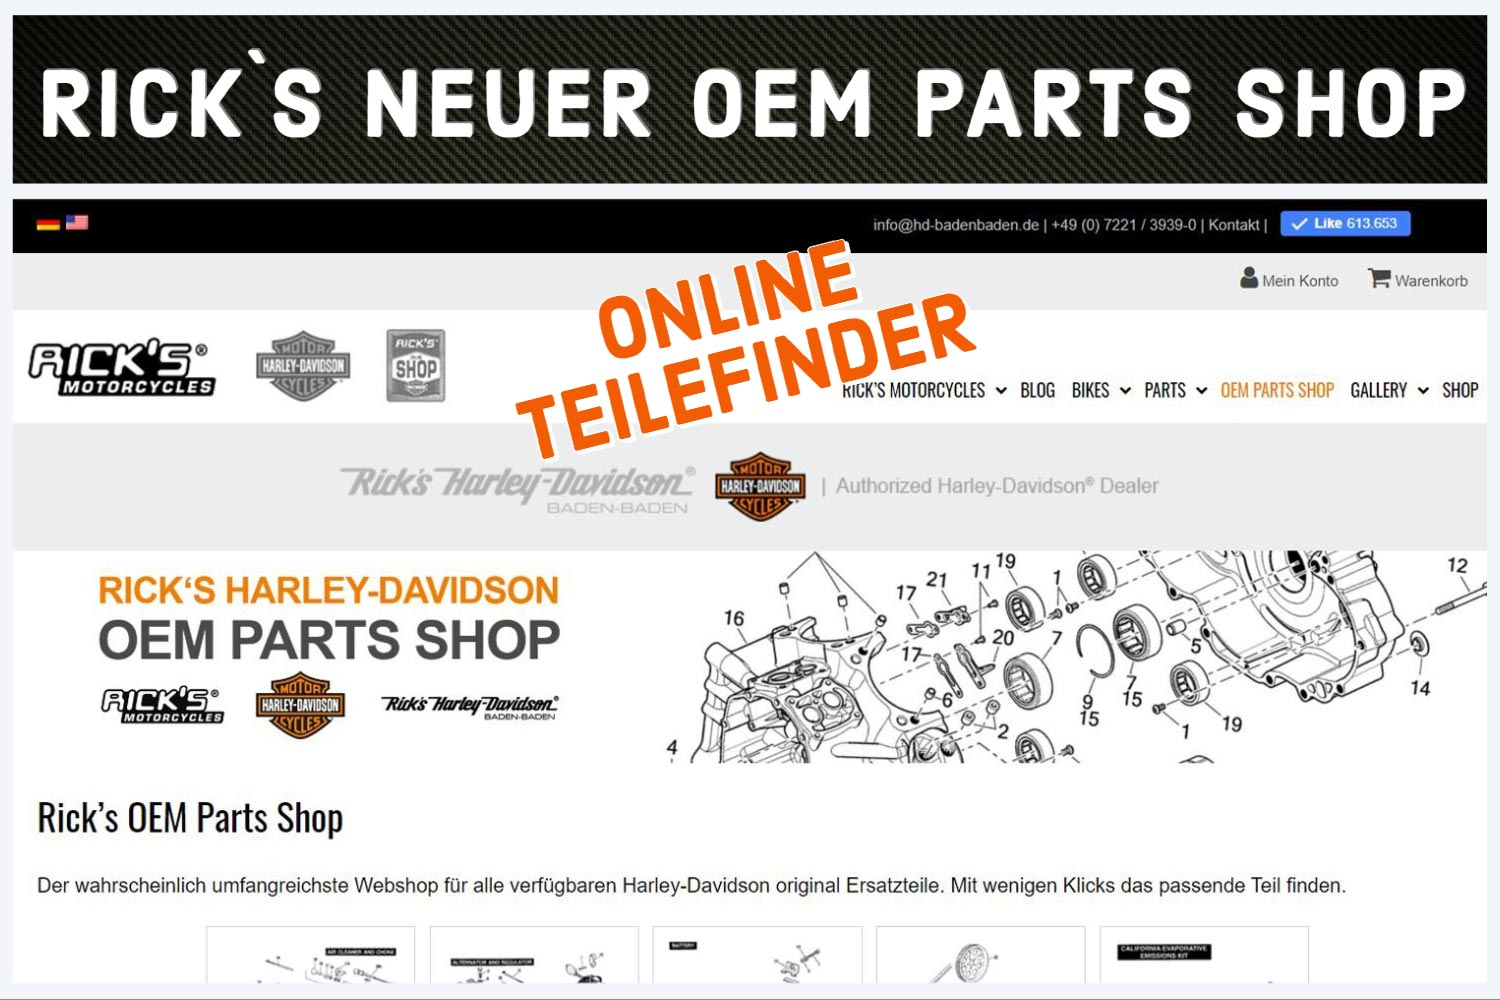 Ricks OEM Parts-Shop Harley-Davidson Teile